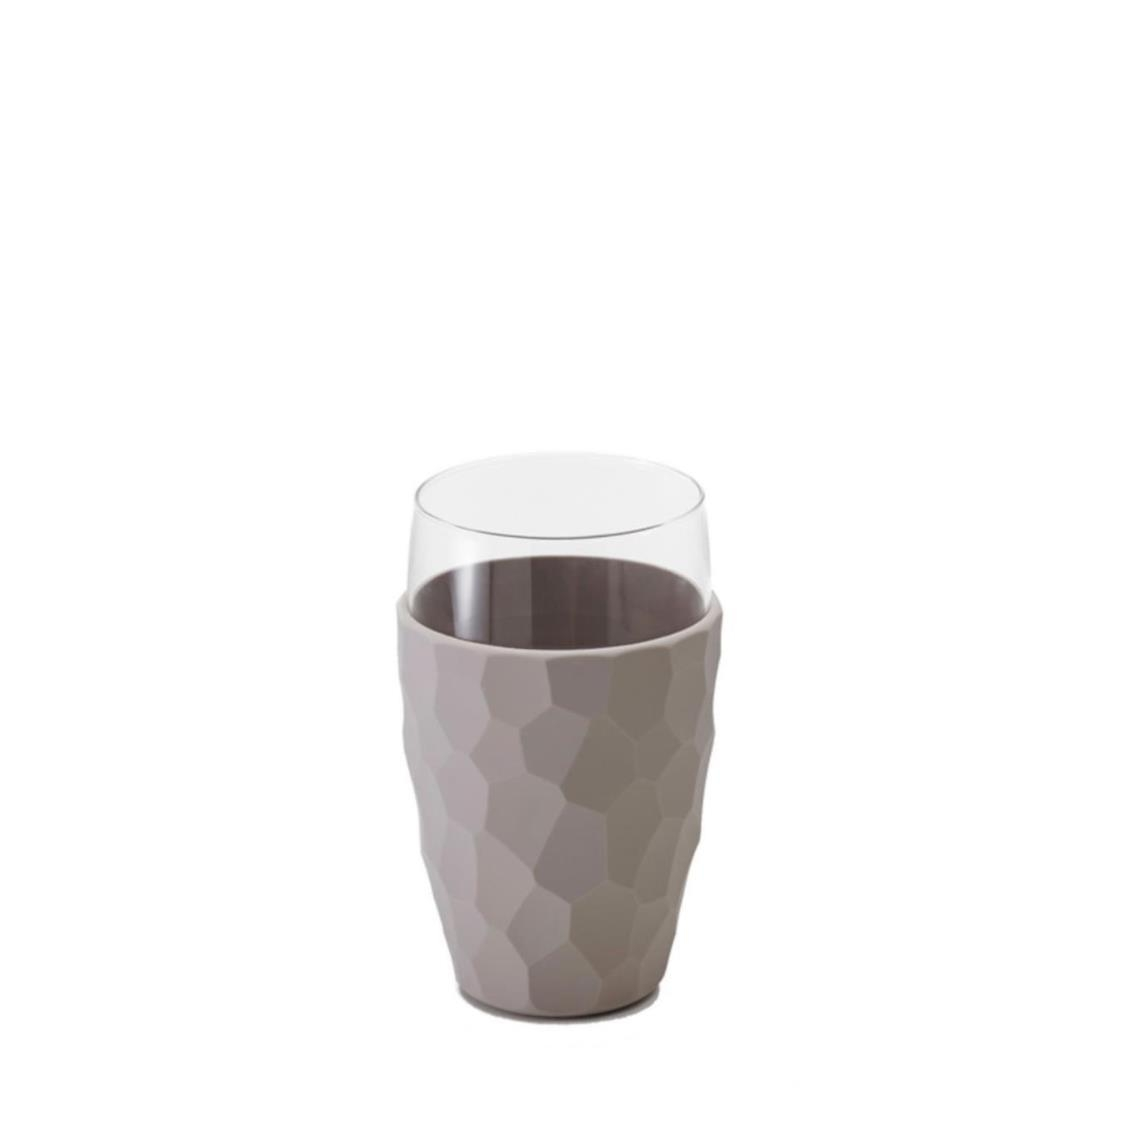 Grenade Tumbler Warm Grey 600mlTwin Pack Box of 2